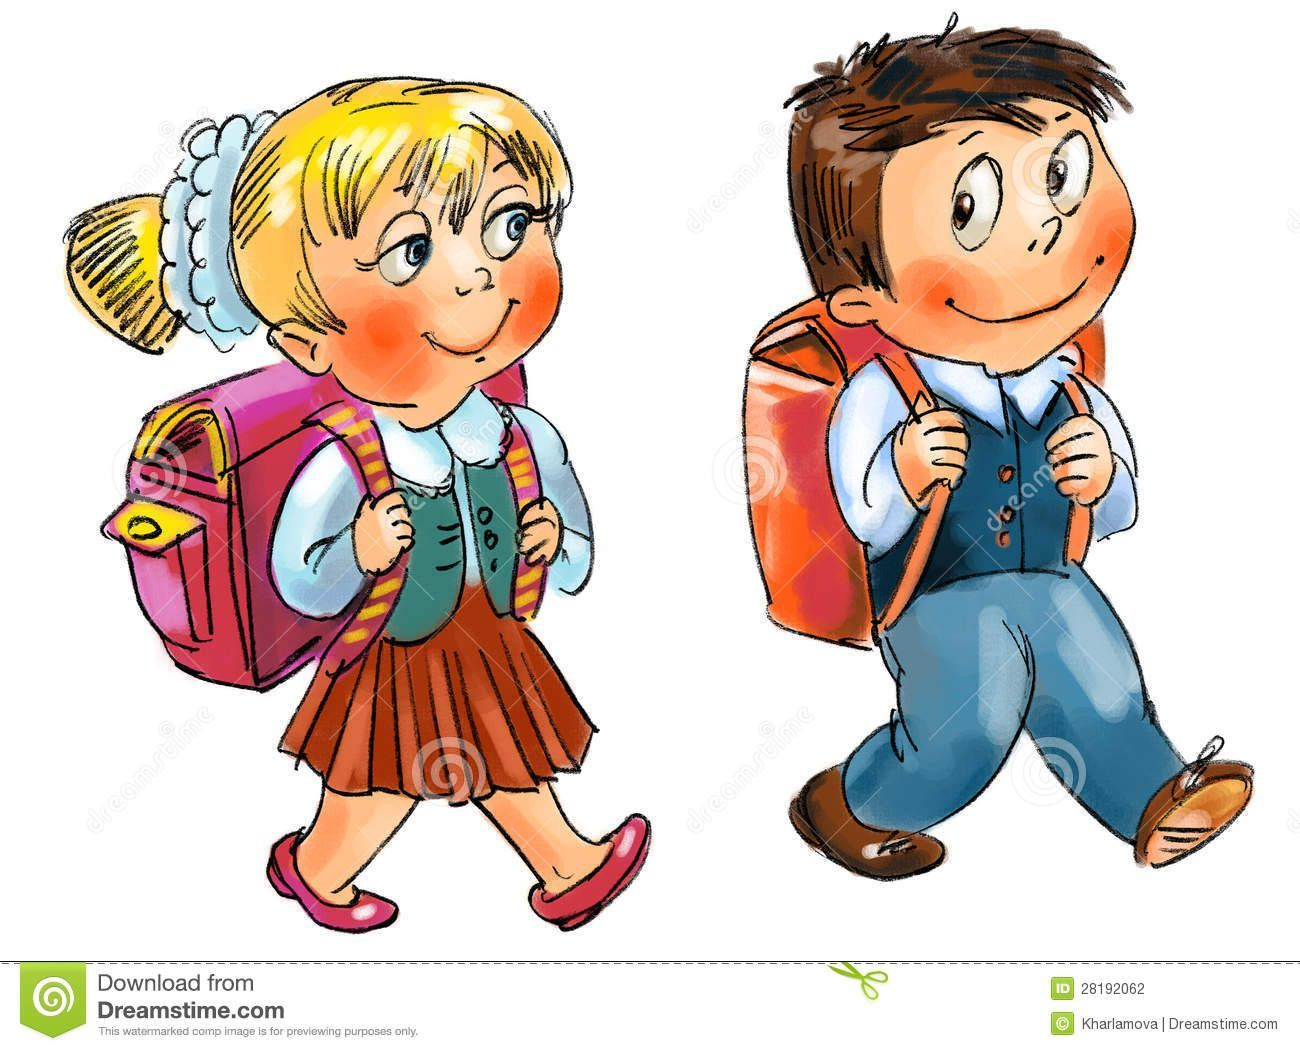 Student going to school clipart 5 » Clipart Portal.